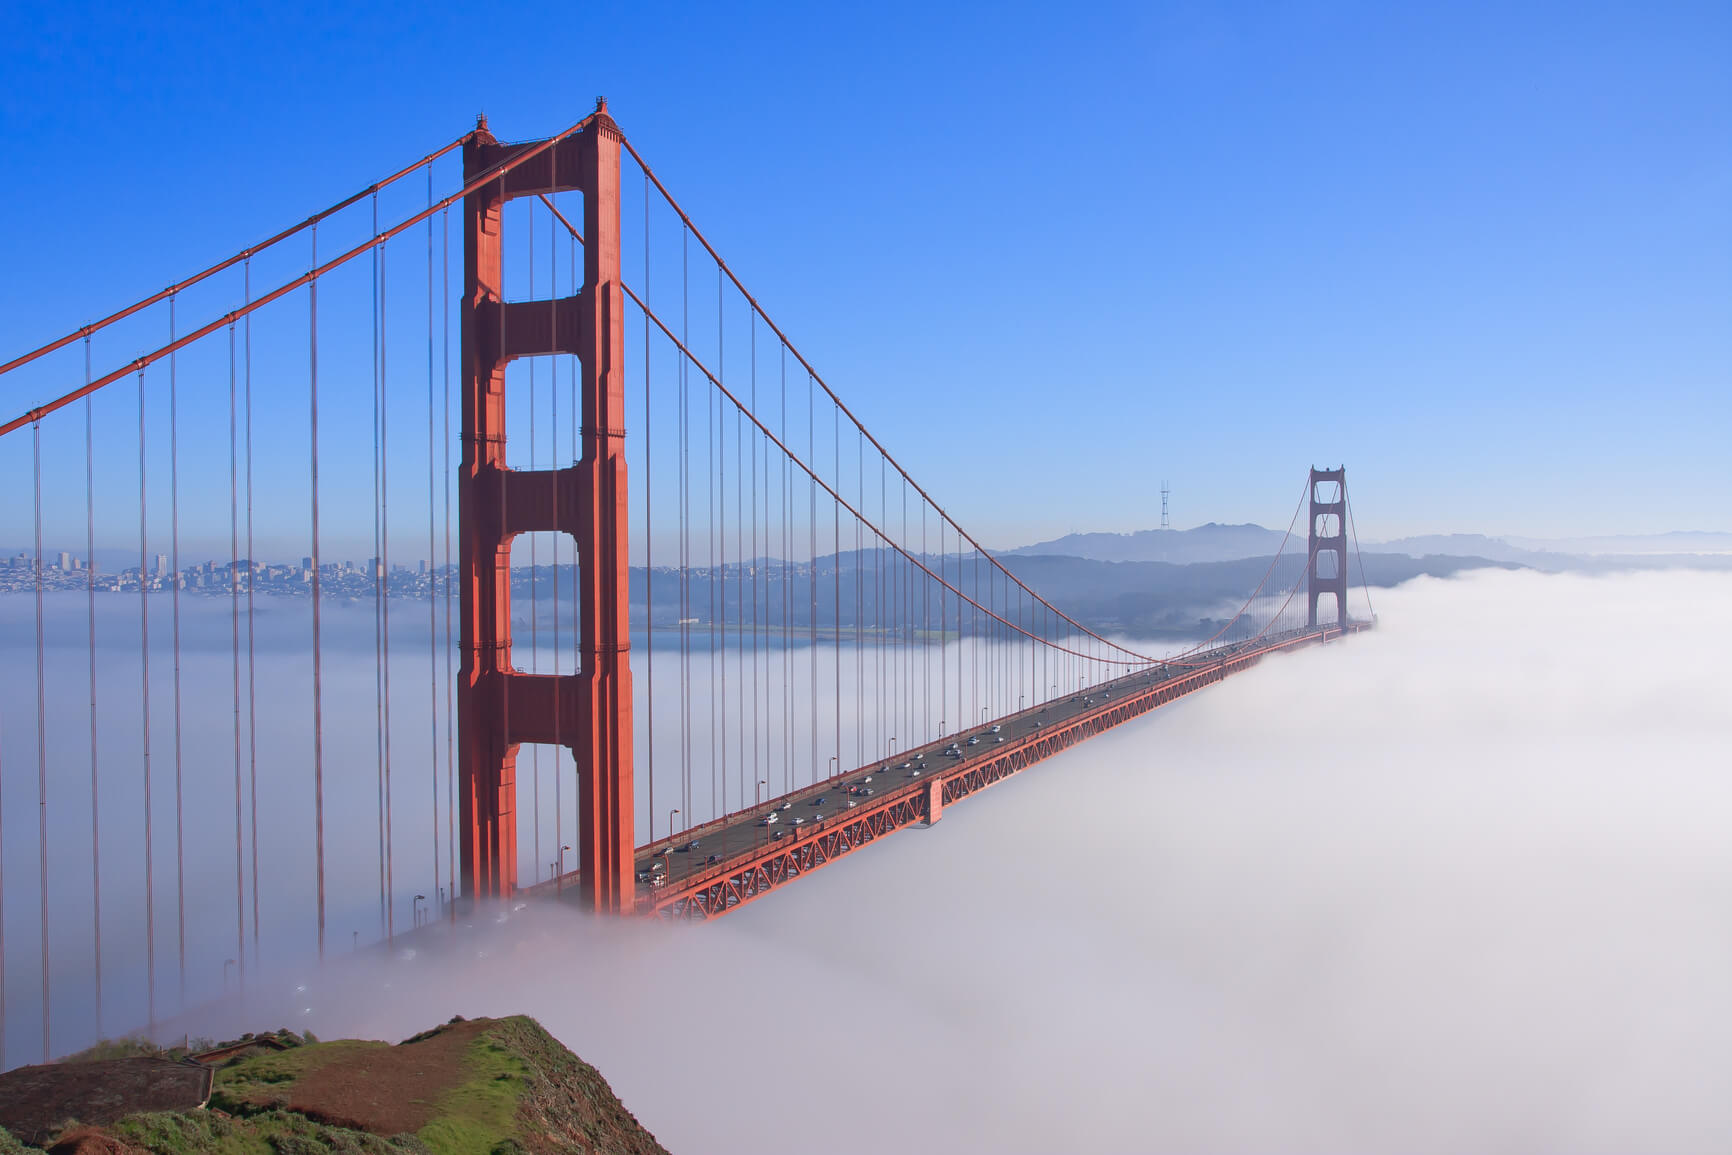 Non-stop from Fort Lauderdale to San Francisco (& vice versa) for only $148 roundtrip (Oct-Mar dates)